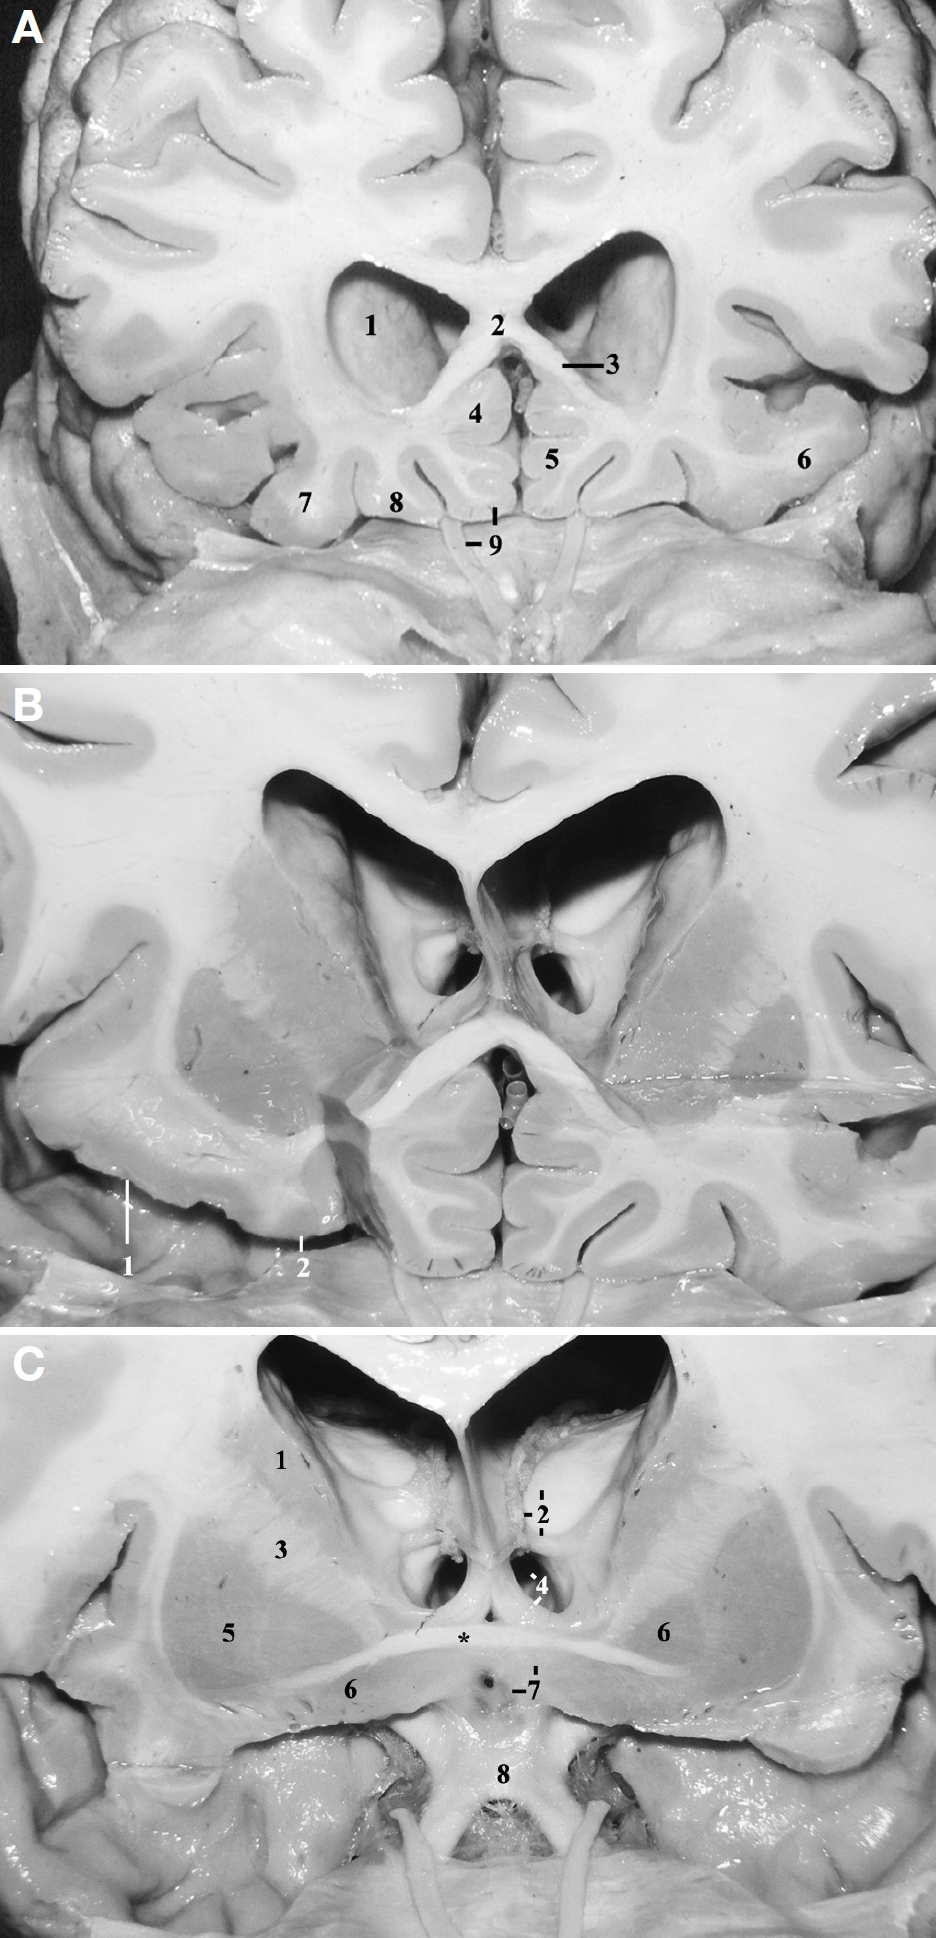 Figure 8. A, a coronal cut at the level of the planum sphenoidale, just anterior to the head of the caudate nucleus has been made. 1, head of the caudate nucleus; 2, genu of the corpus callosum; 3, rostrum of the corpus callosum; 4, inferior continuation of the cingulate gyrus; 5, inferior continuation of the medial frontal gyrus; 6, lateral orbital gyrus; 7, posterior orbital gyrus; 8, medial orbital gyrus; 9, rectus gyrus and the olfactory tract. The superior rostral sulcus is located between the 4 and 5, and the inferior rostral sulcus is located between the 5 and 9. The posteromedial limb of the orbital sulcus is located between the 7 and 8. The olfactory sulcus is located superiorly to the olfactory tract. B, a coronal cut was performed at a level between the cuts shown in Figs. 8A and 6C. 1, transverse gyrus of Eberstaller; 2, posteromedial orbital lobule. C, coronal cut performed at the level of the optic chiasm (at the anterior perforated substance). 1, caudate nucleus; 2, thalamus, choroidal fissure, and thalamostriate vein; 3, internal capsule, transition between the anterior limb and the genu; 4, foramen of Monro and column of fornix; 5, putamen; 6, globus pallidus; 7, lamina terminalis and hypothalamus; 8, optic chiasm. Asterisk, anterior commissure. (Images courtesy of AL Rhoton, Jr.)